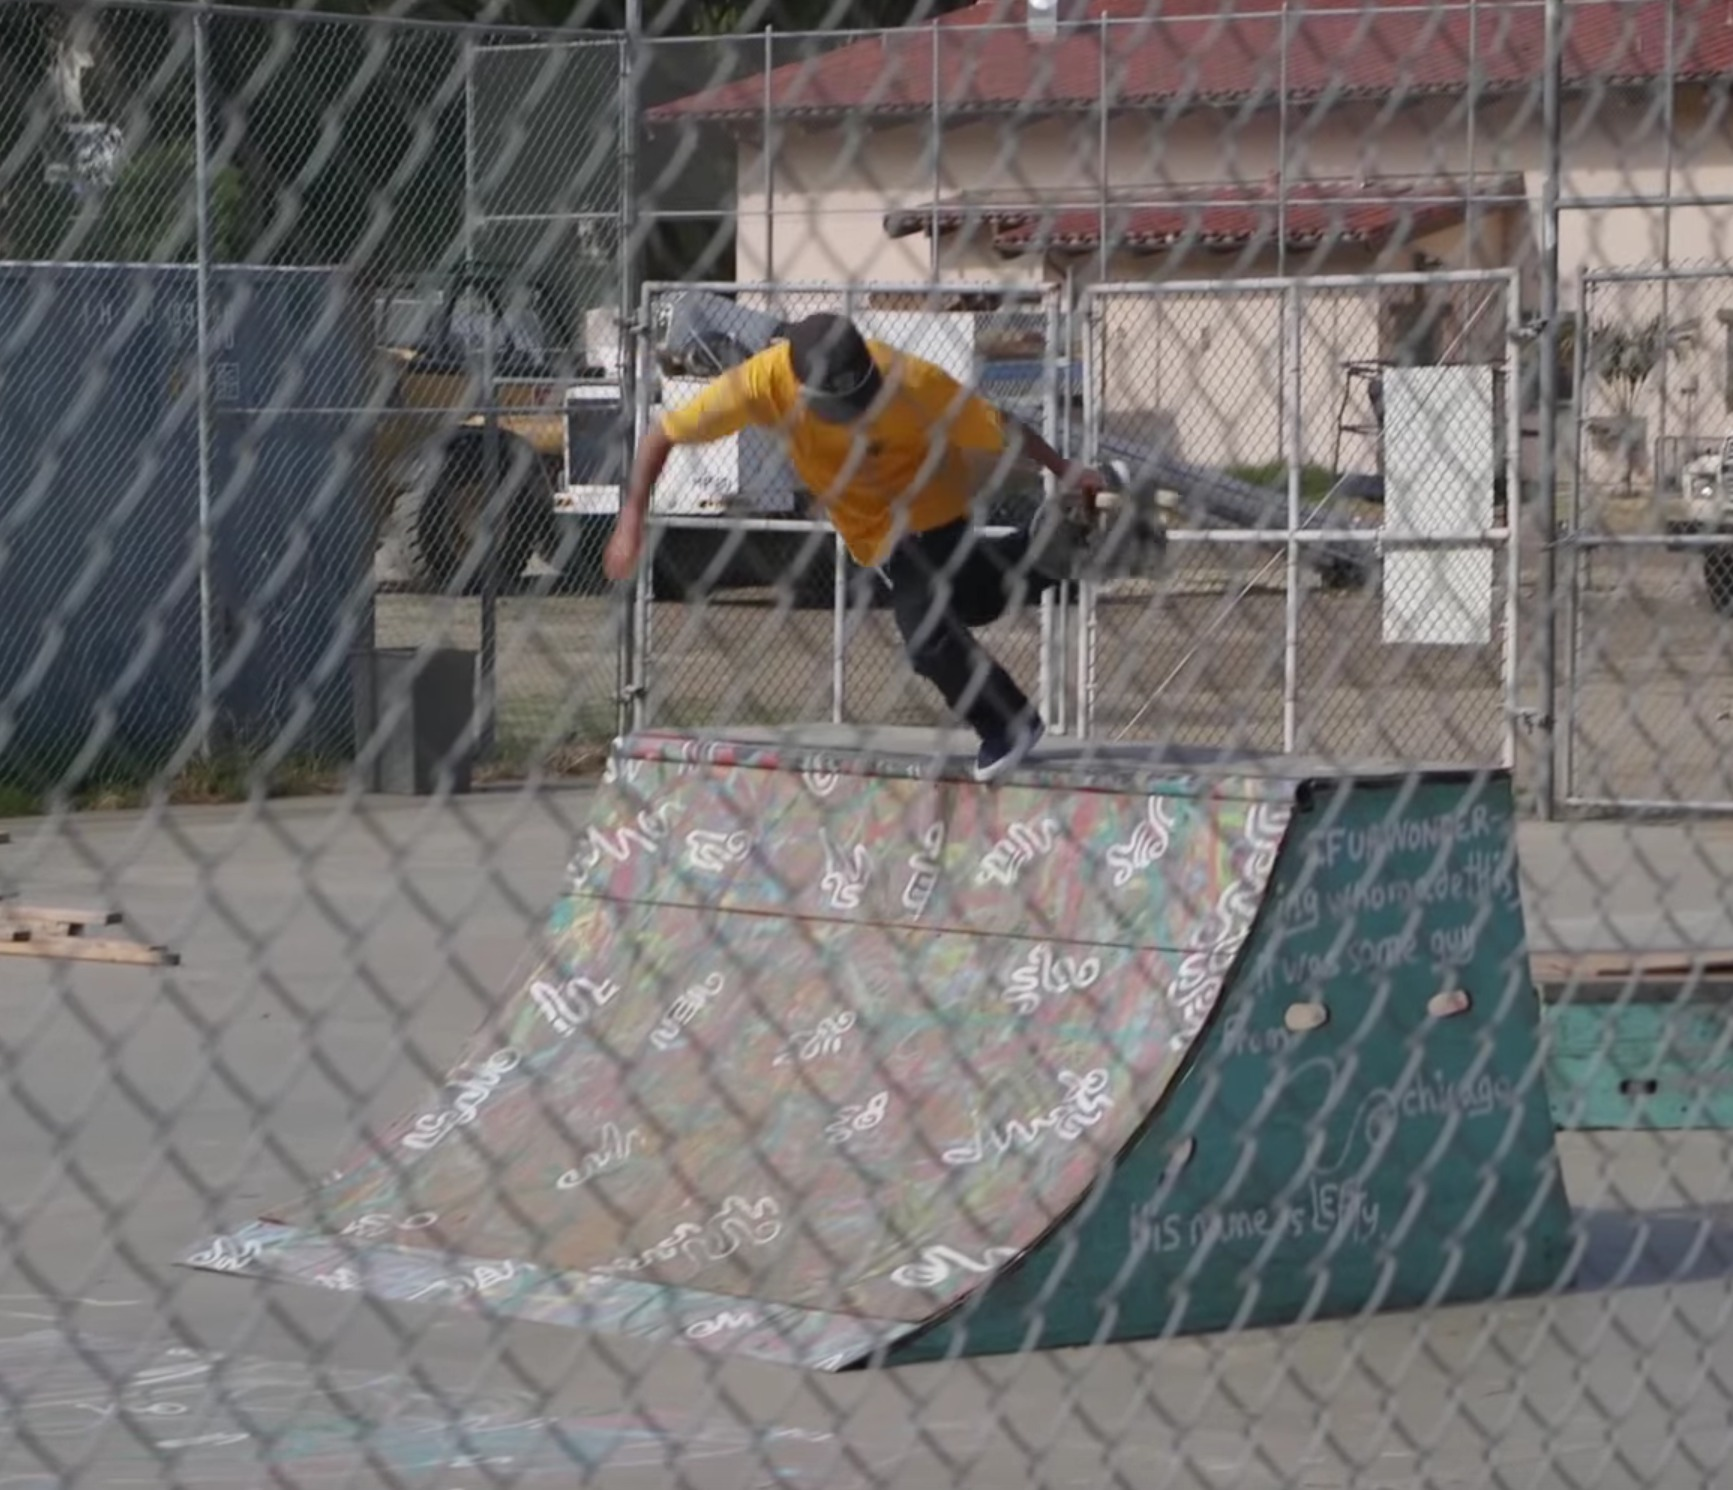 avalon skatepark, avalon, california